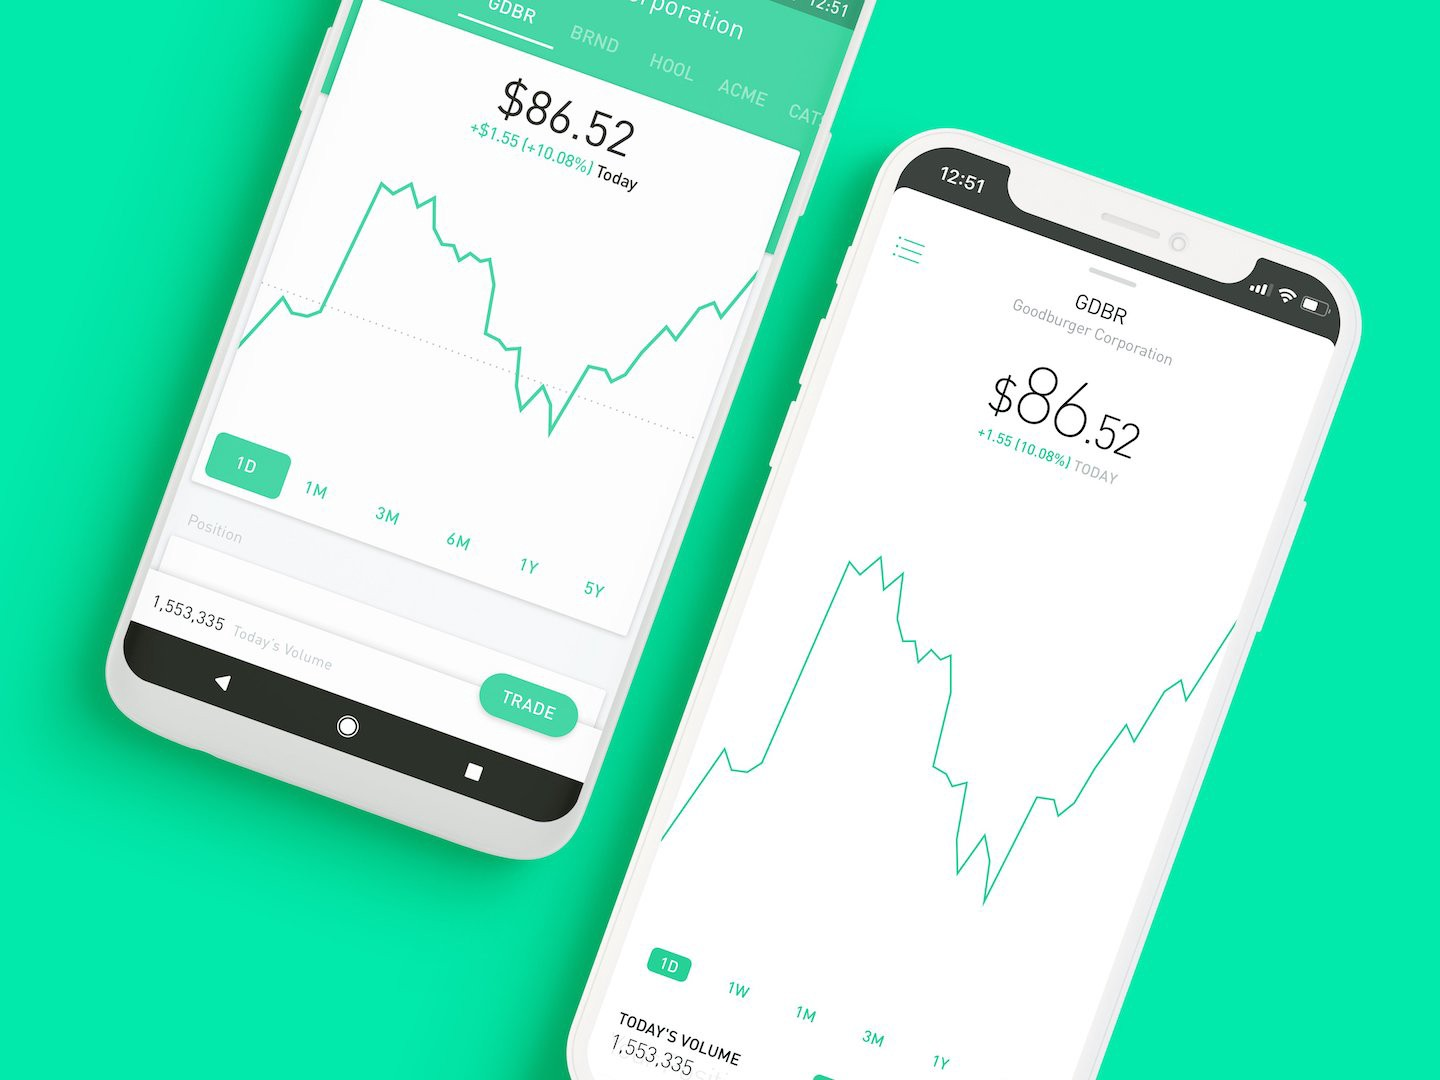 Options Trading On Robinhood